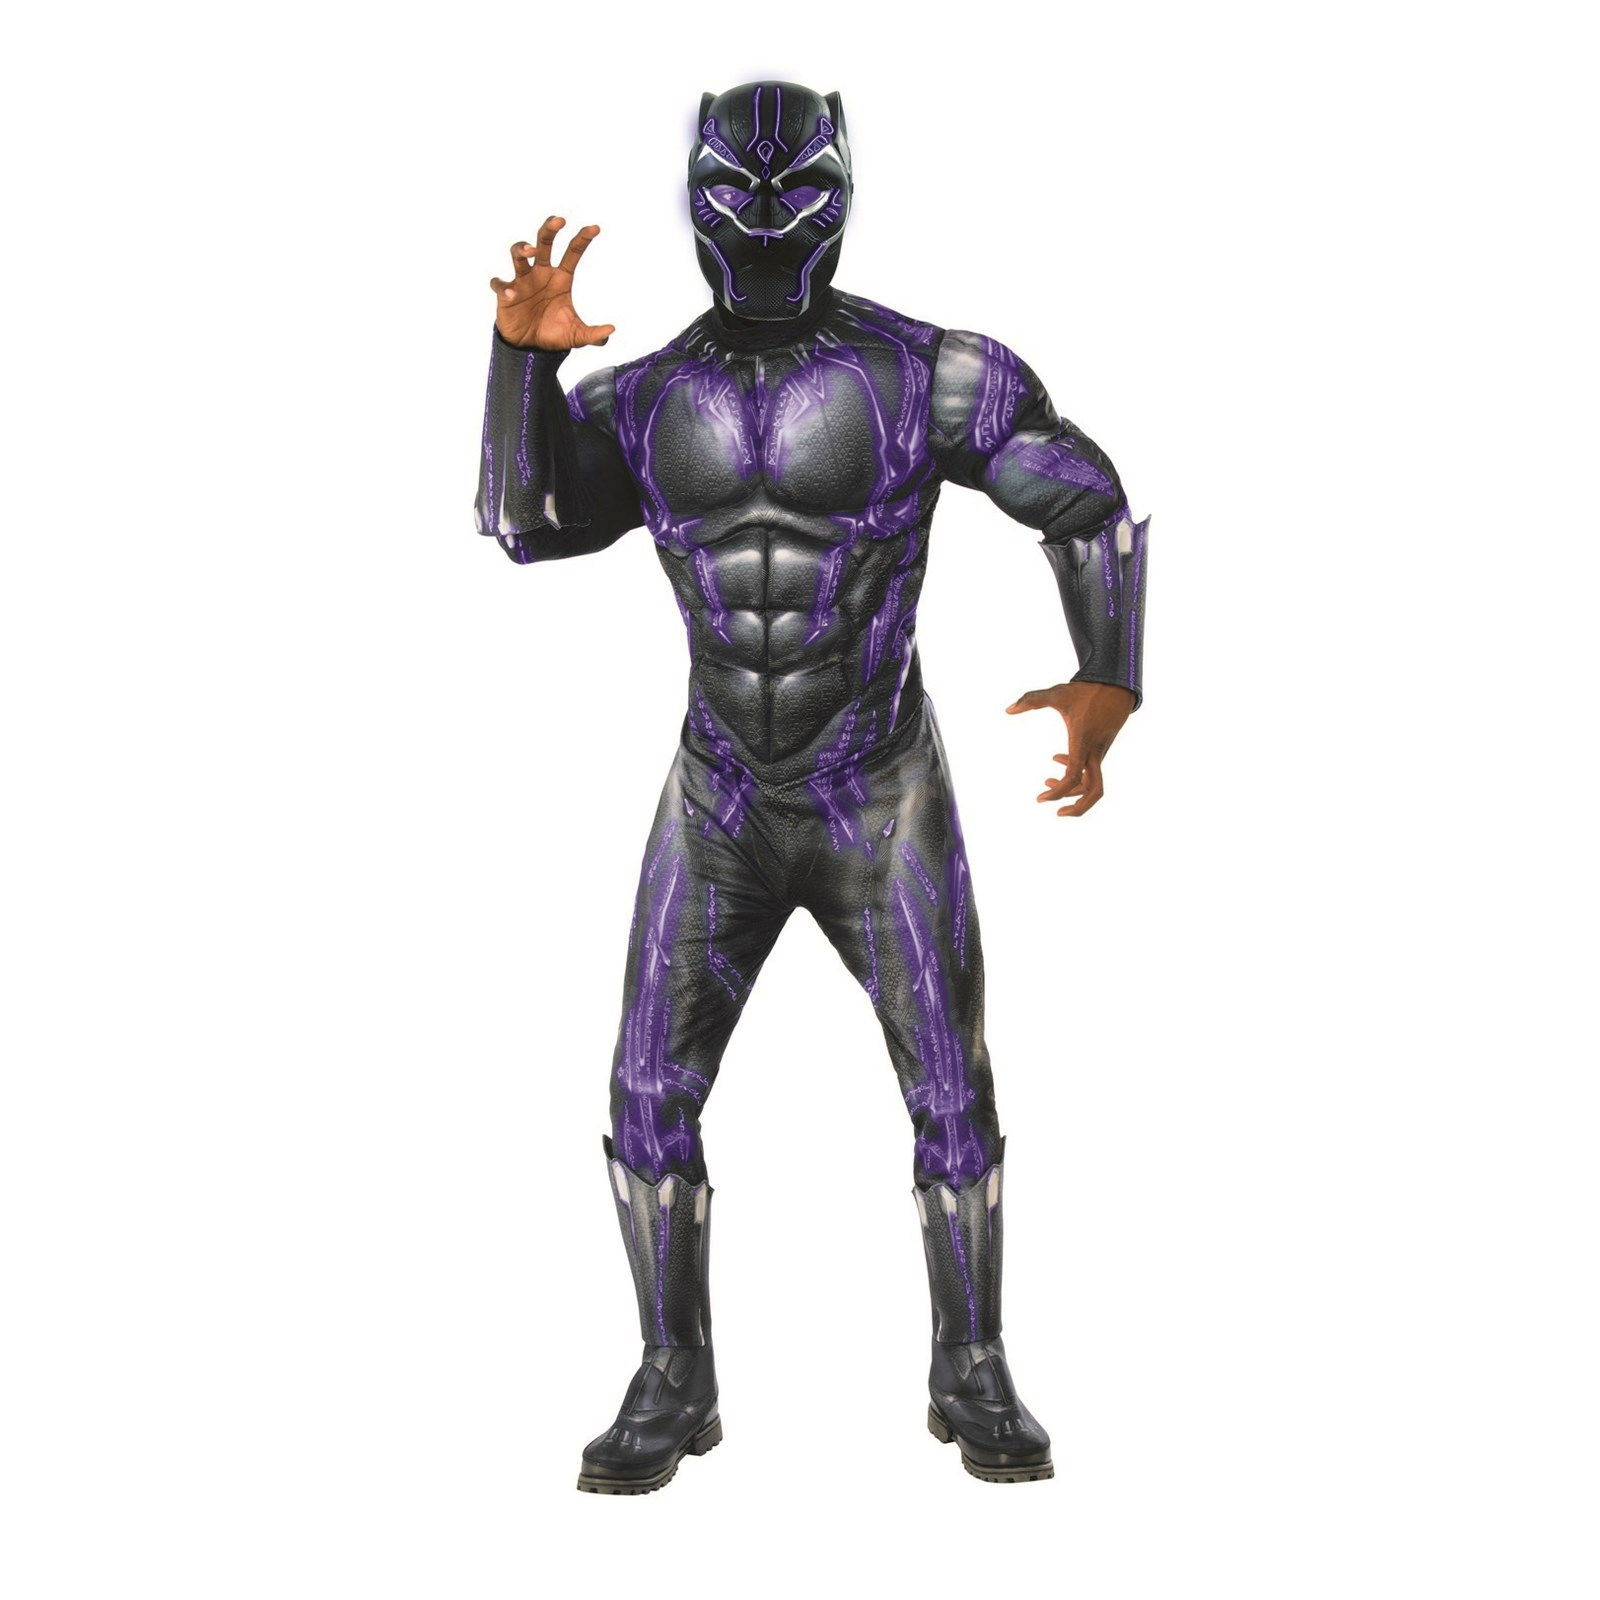 Deluxe Black Panther Battle Mask Halloween Costume Accessory